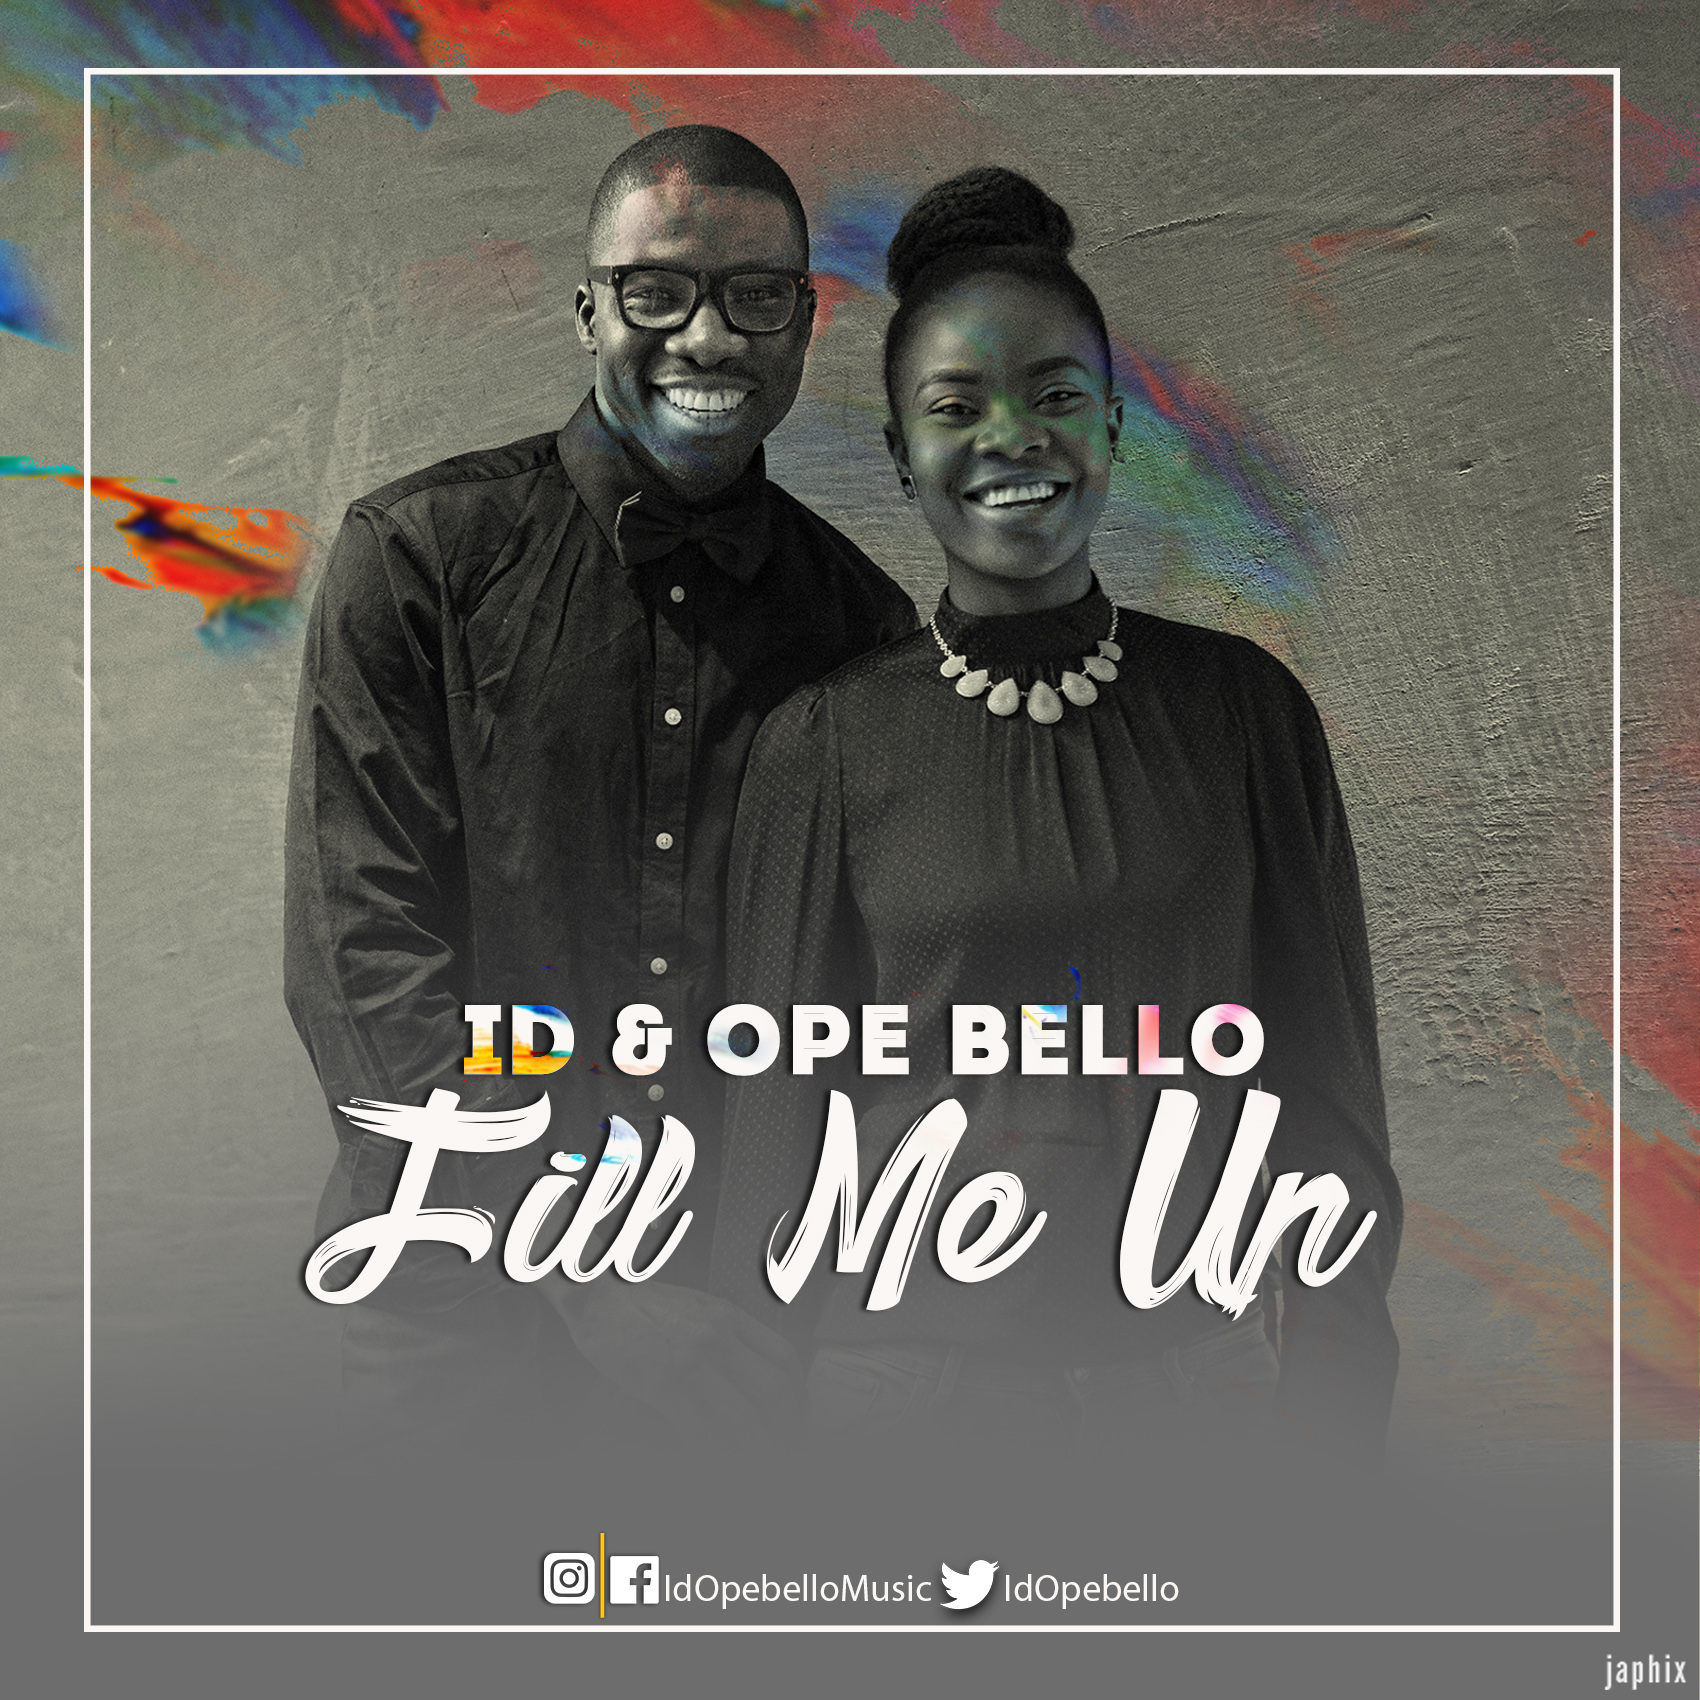 ID & Ope Bello